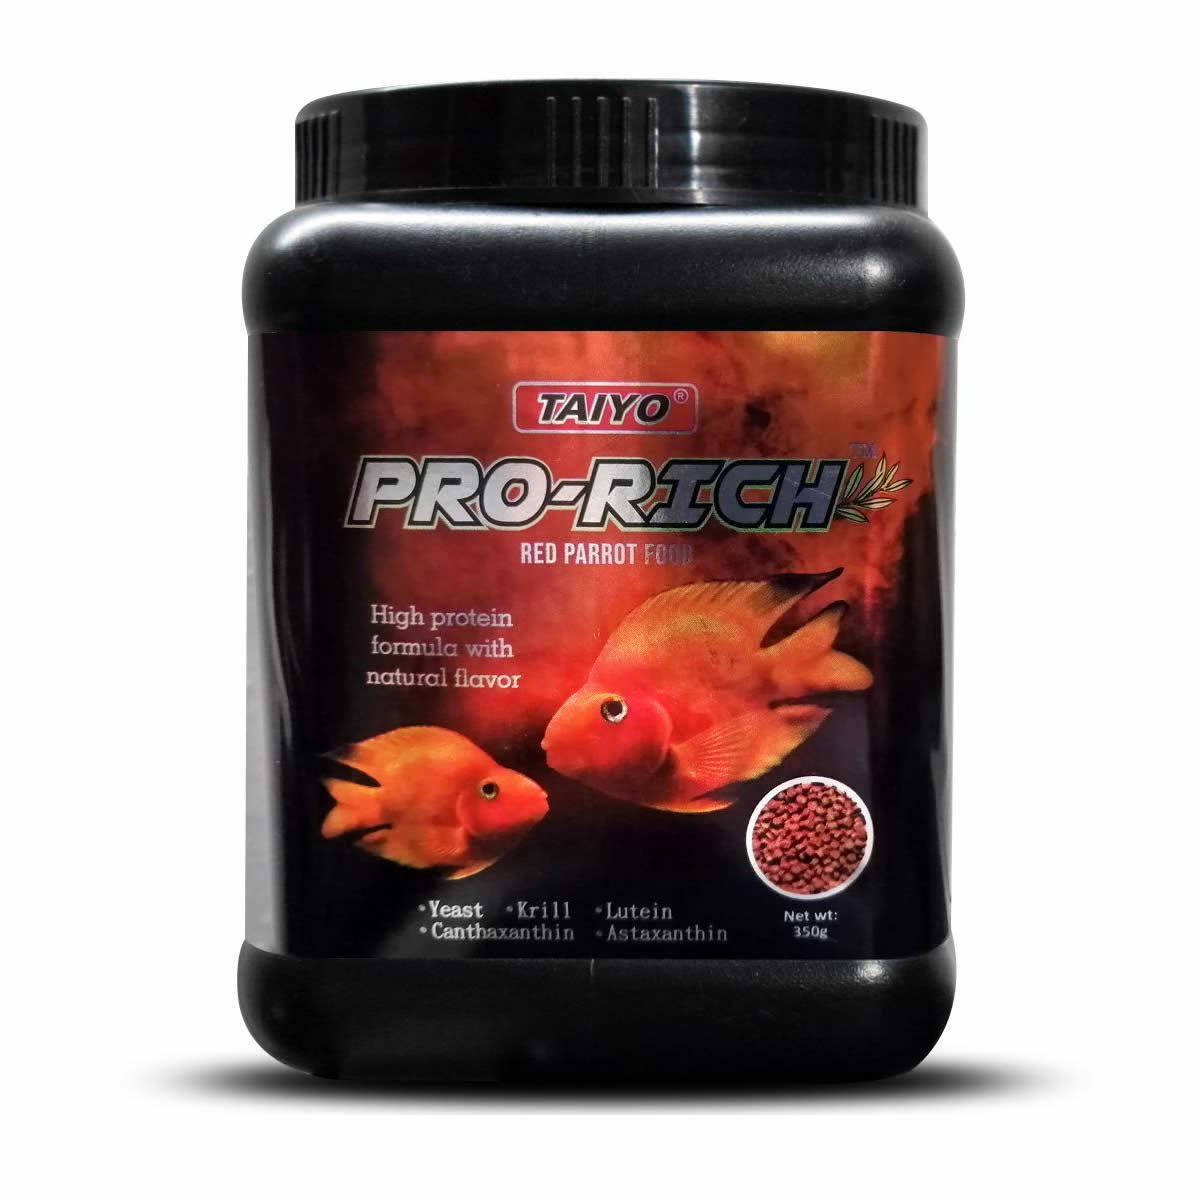 Taiyo Pro-Rich Red Parrot Food 350g